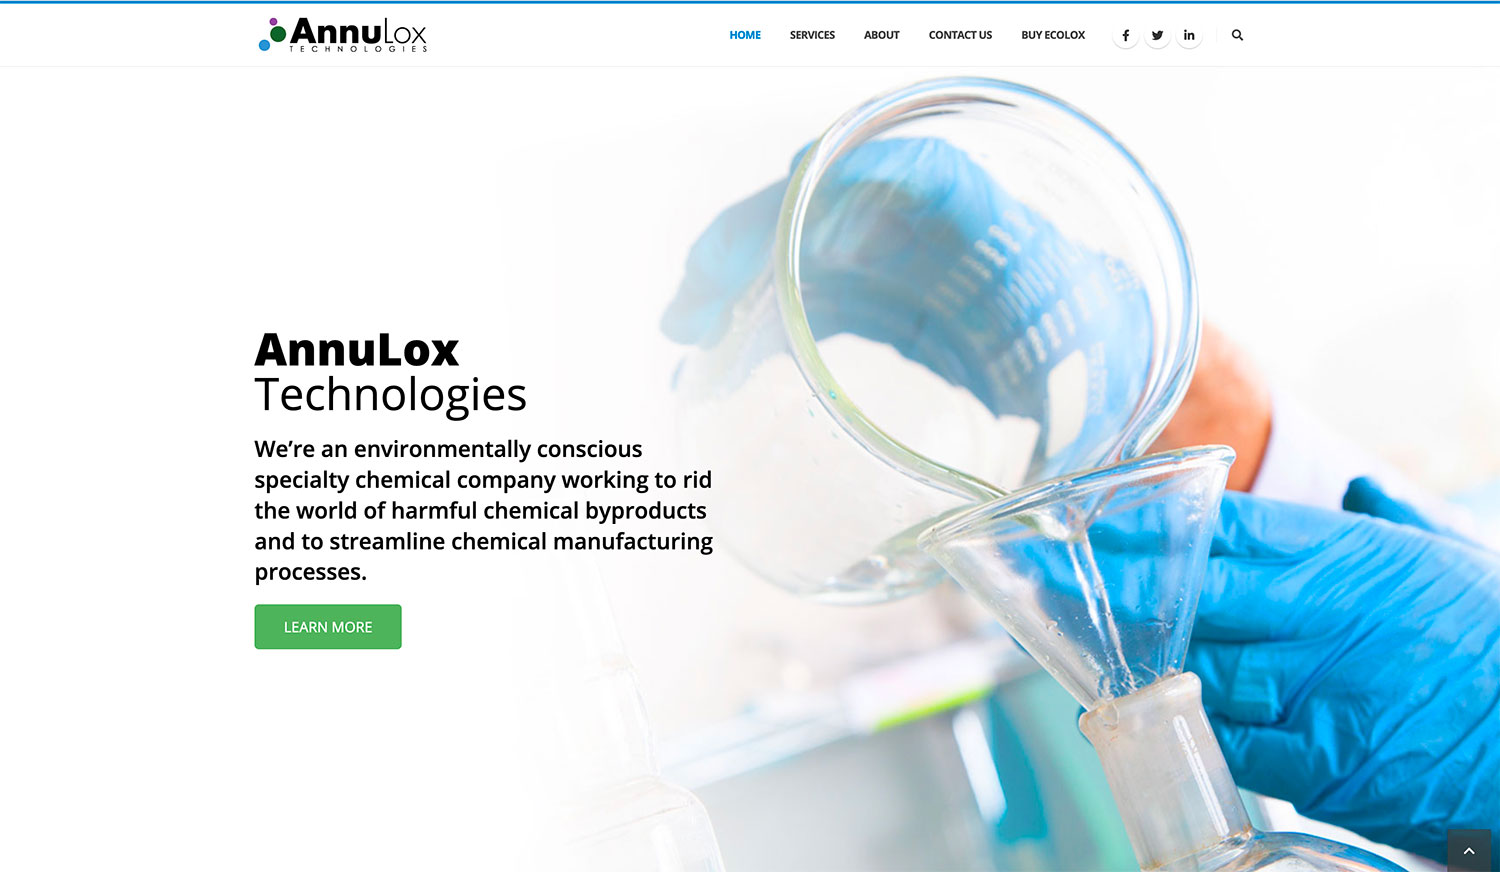 AnnuLox Technologies - Website Design